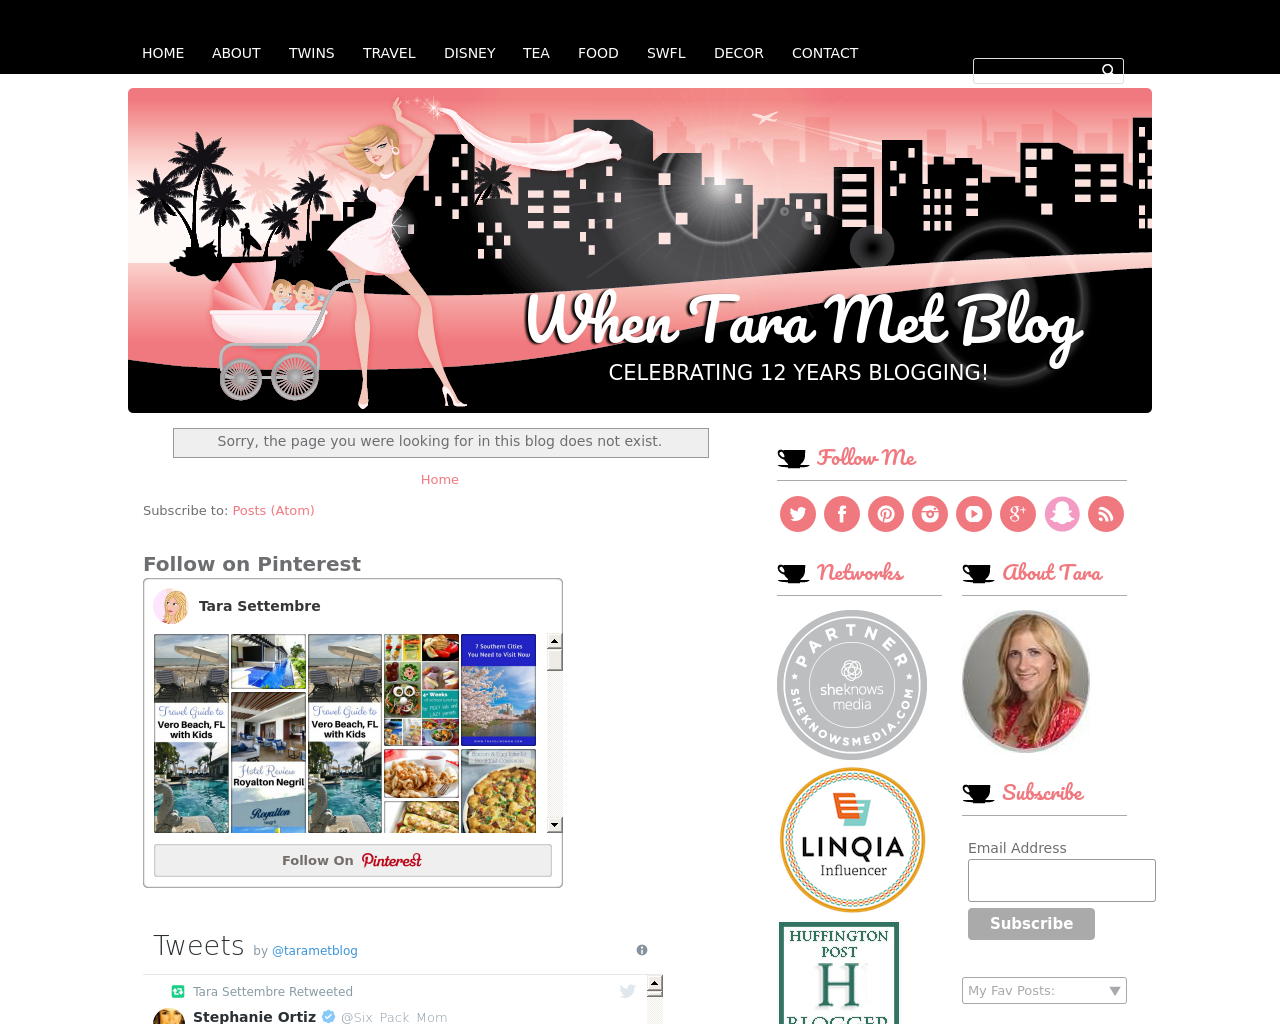 When-Tara-Met-Blog-Advertising-Reviews-Pricing